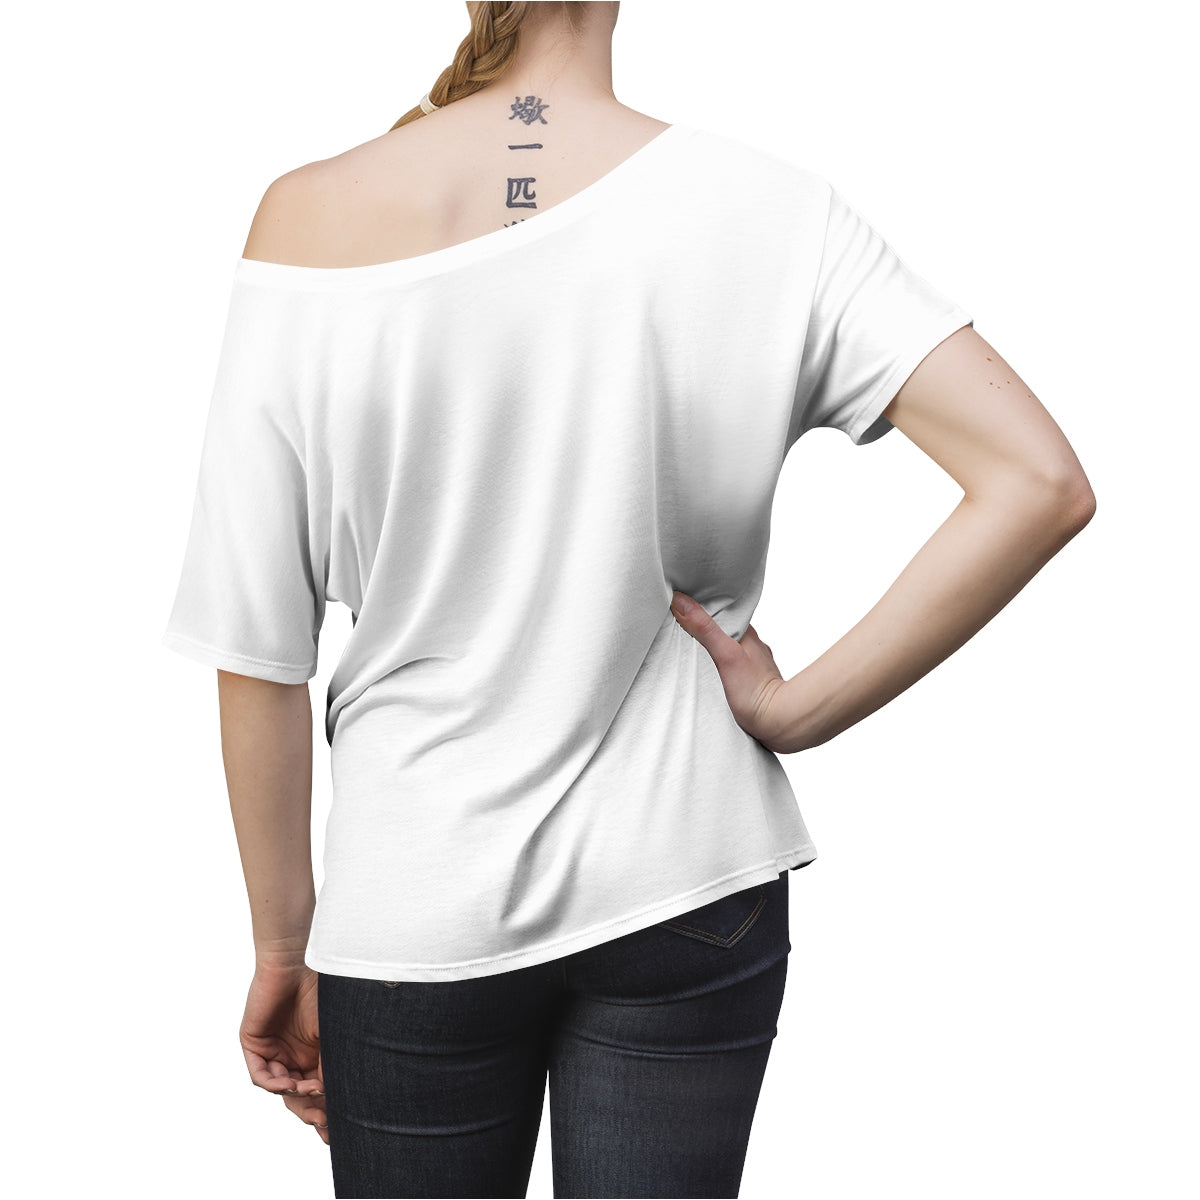 Jesus Came Women's Slouchy top